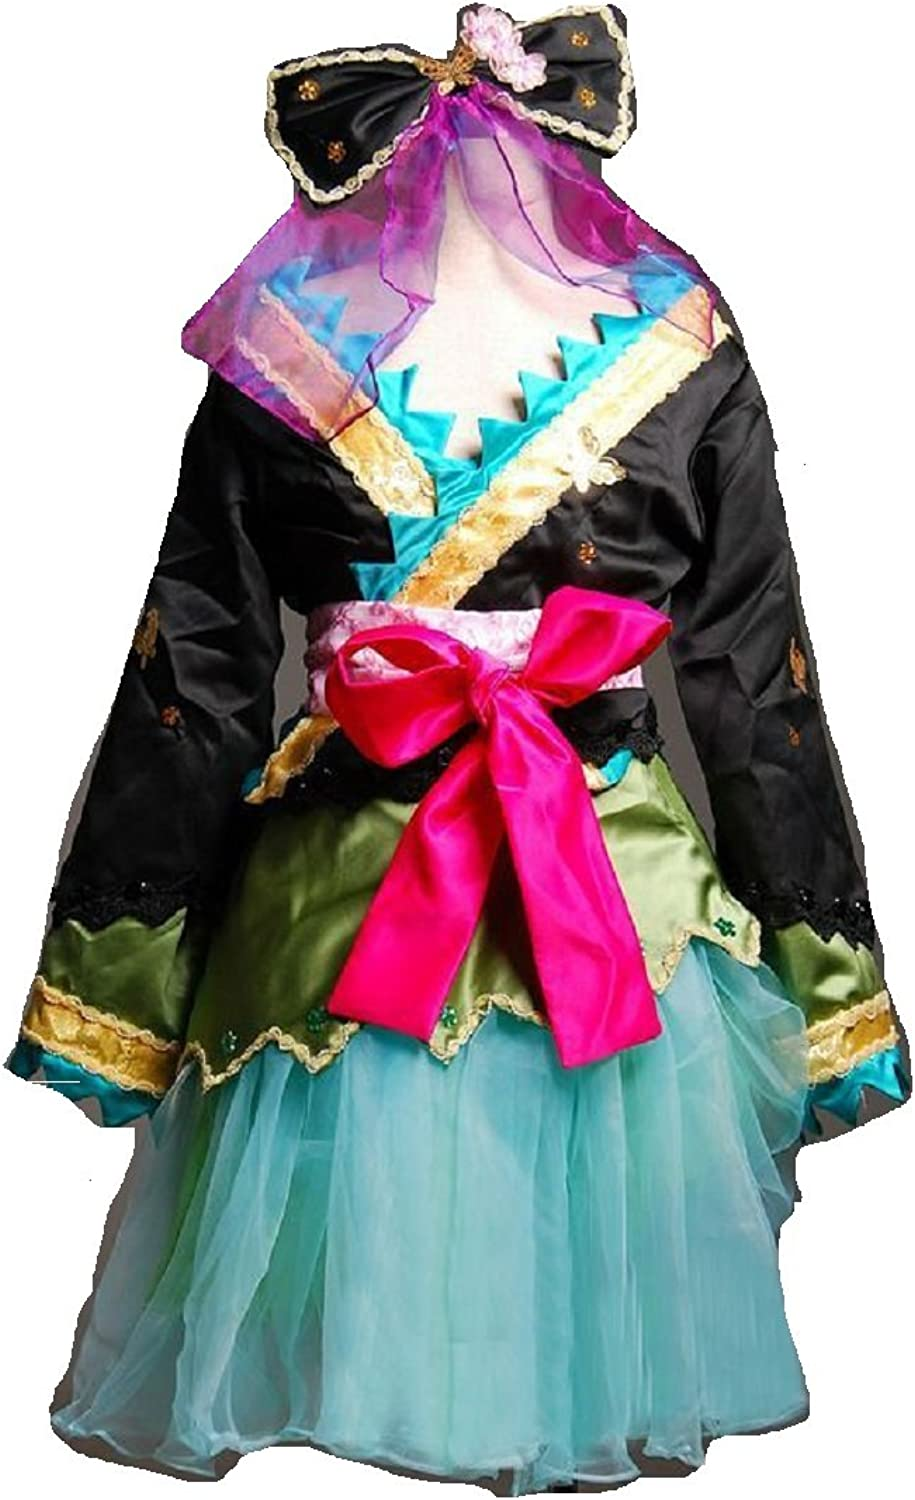 Vocaloid Hatsune Miku Project DIVA 2nd Luka cosplay costume